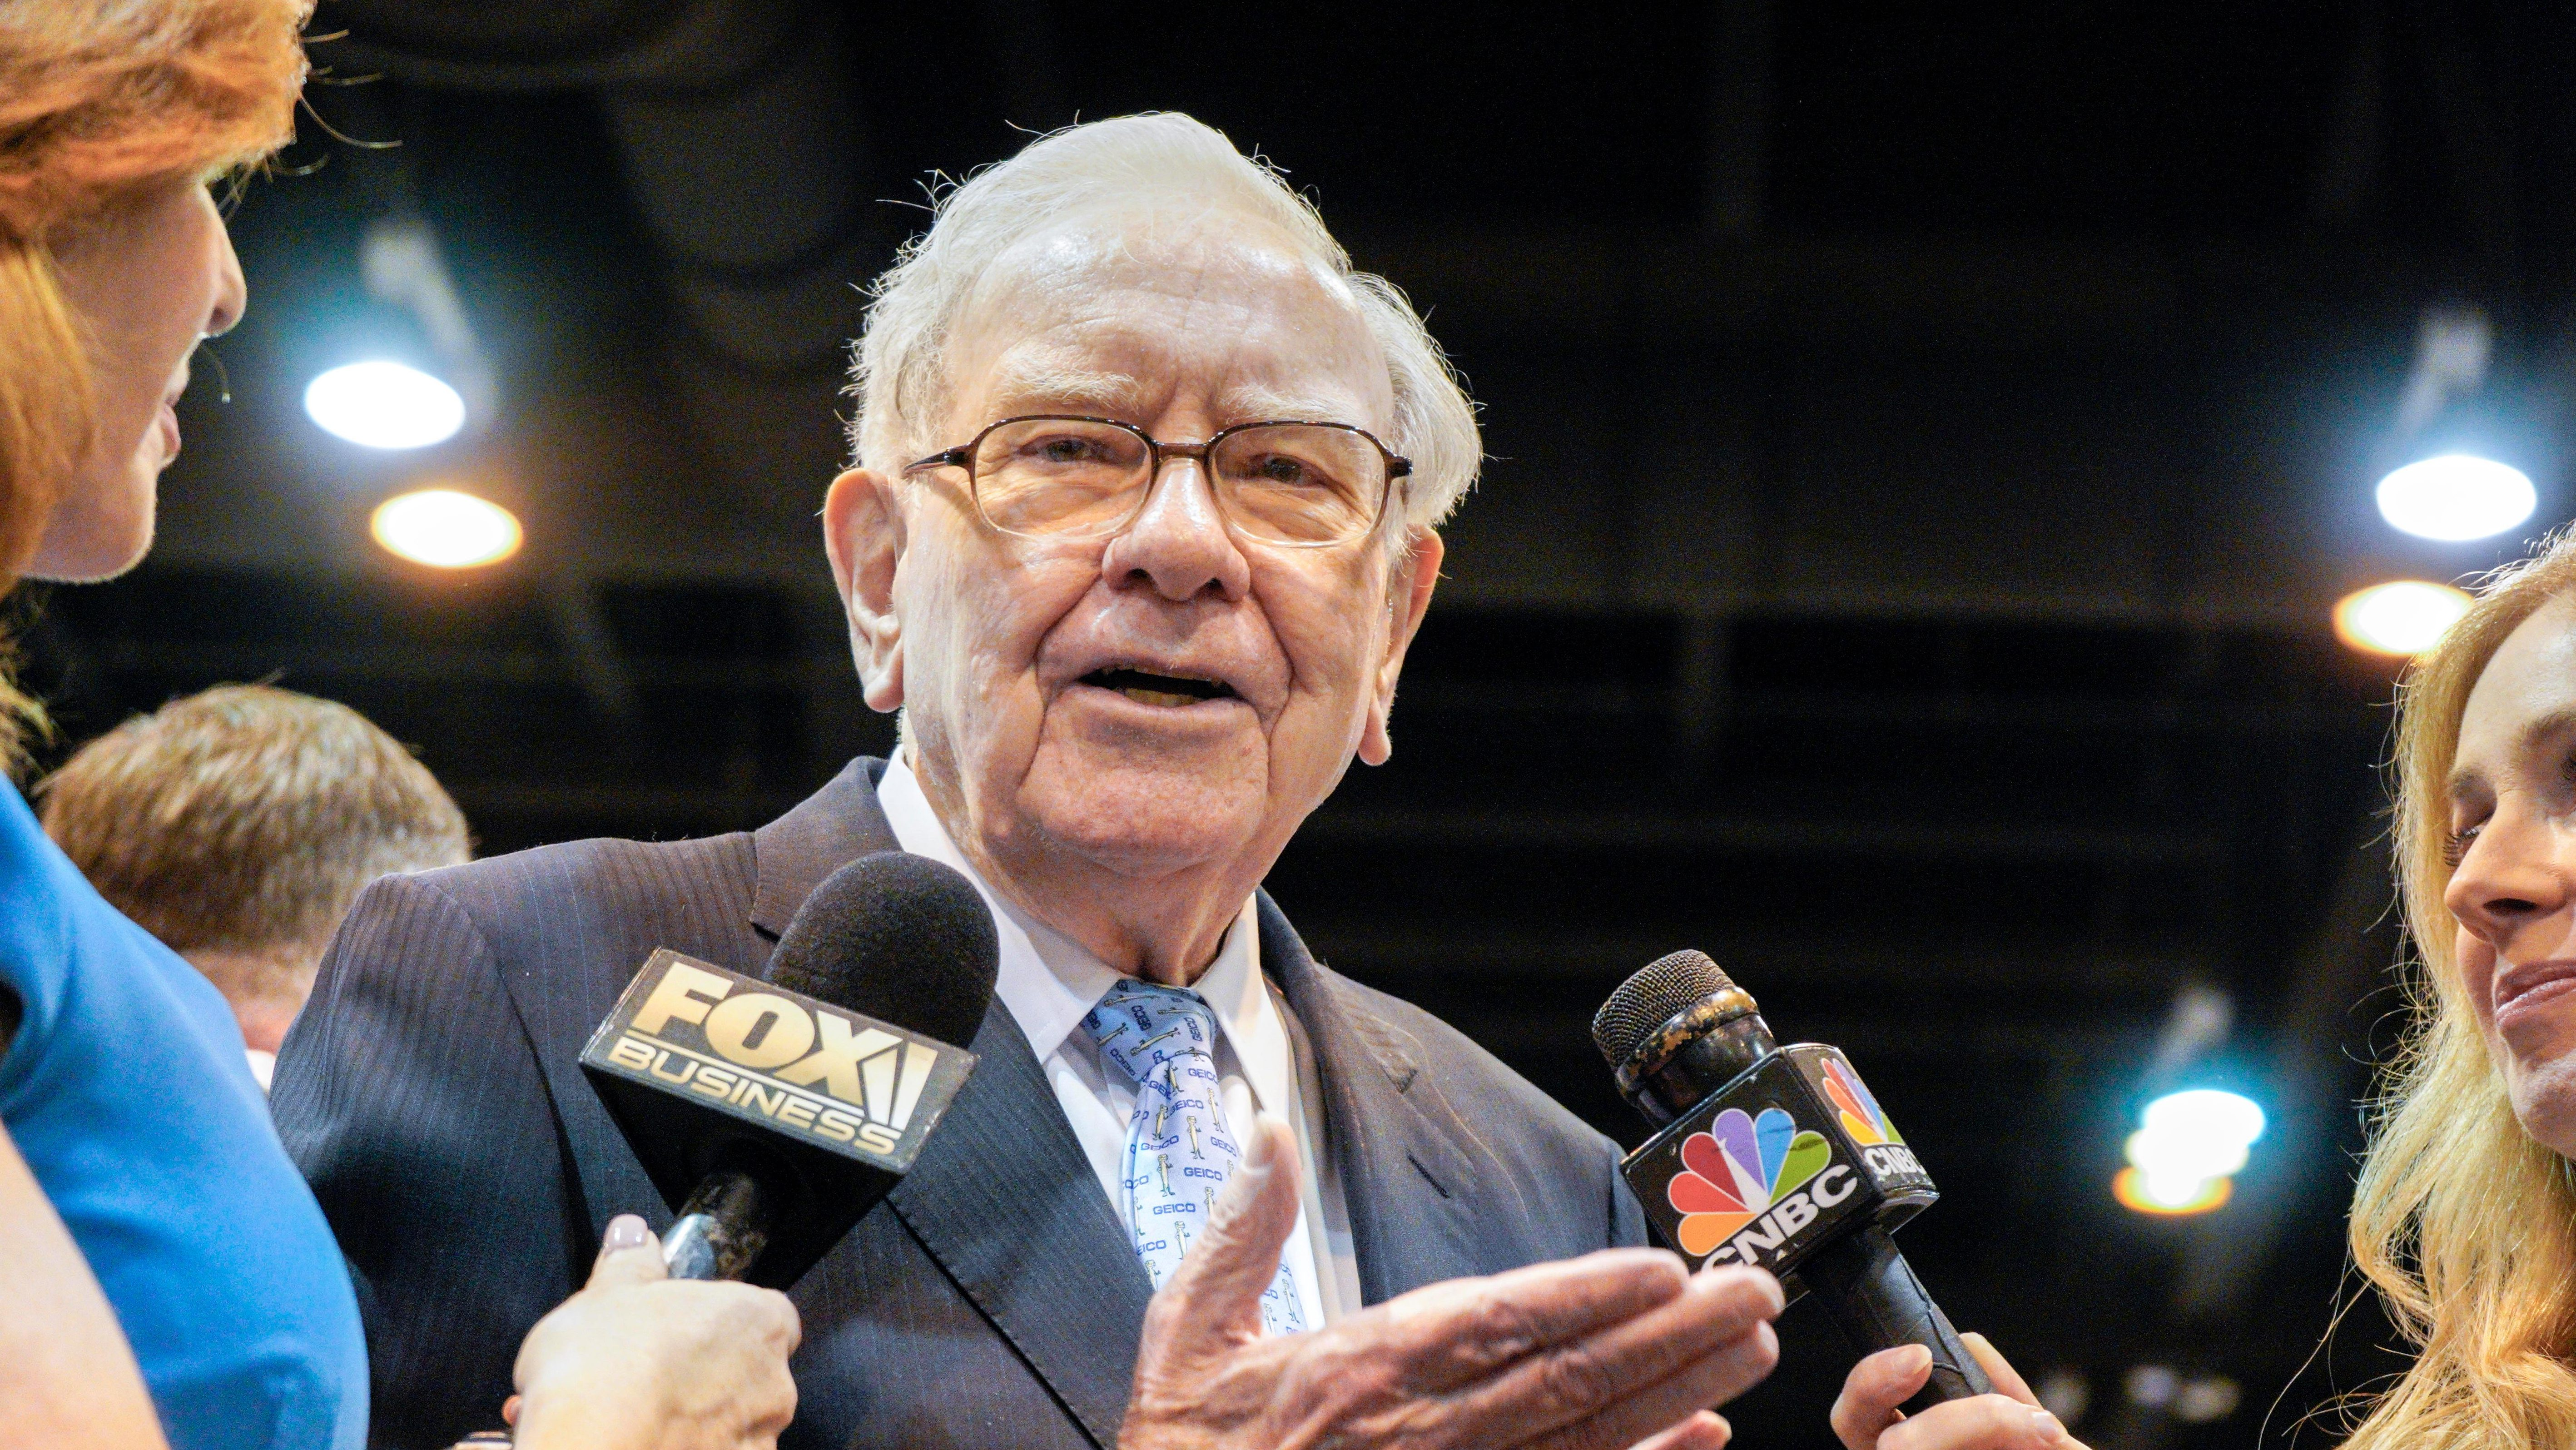 Warren Buffett, Chairman and CEO of Berkshire Hathaway, speaks to reporters during a tour of the exhibit floor at the CenturyLink Center in Omaha, Neb., Saturday, May 5, 2018